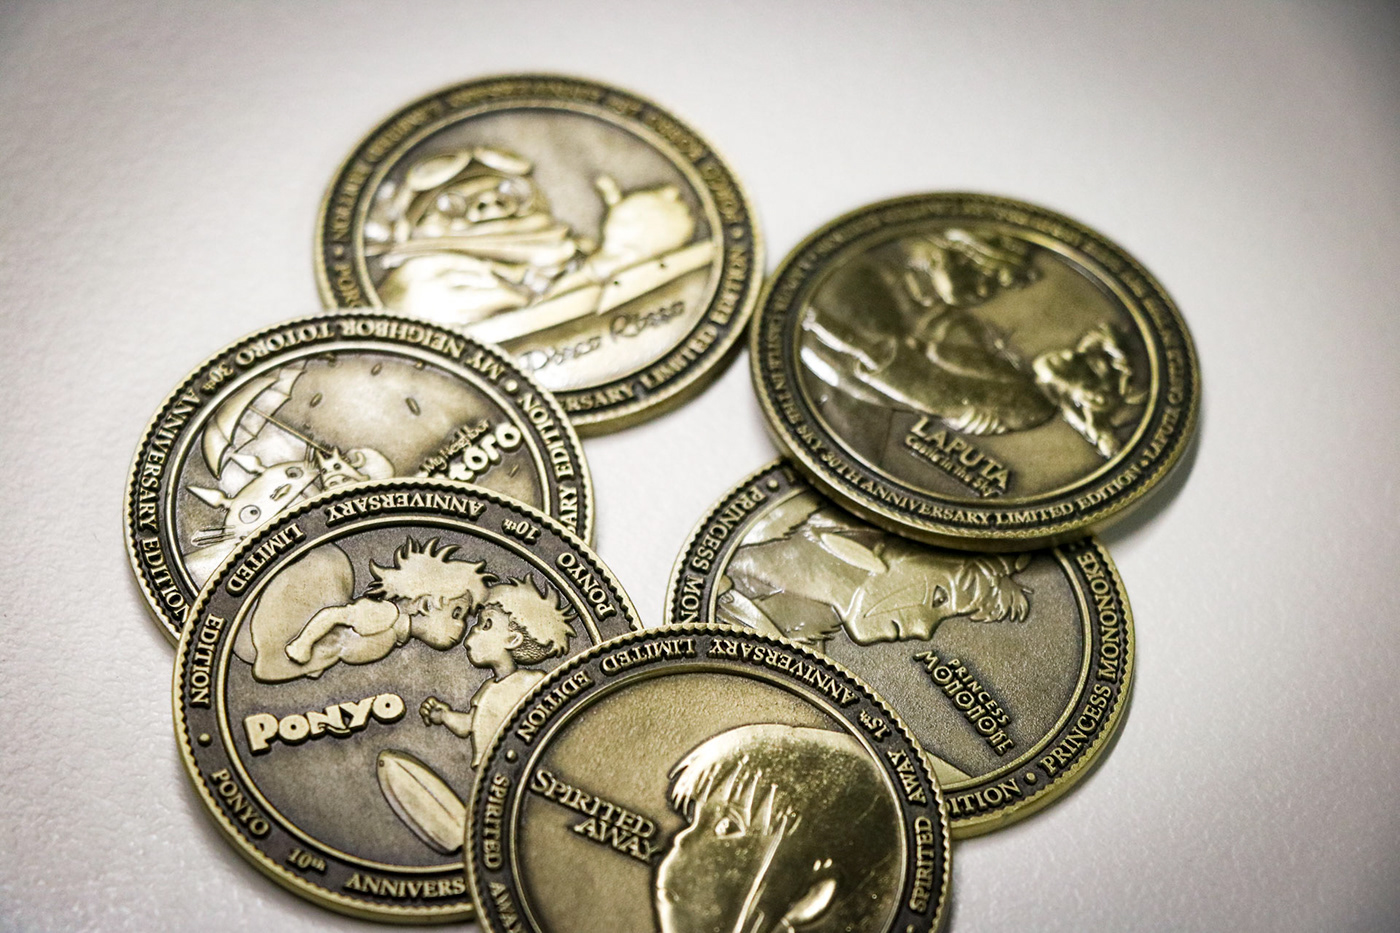 Studio Ghibli Limited Edition Anniversary Coins on Behance